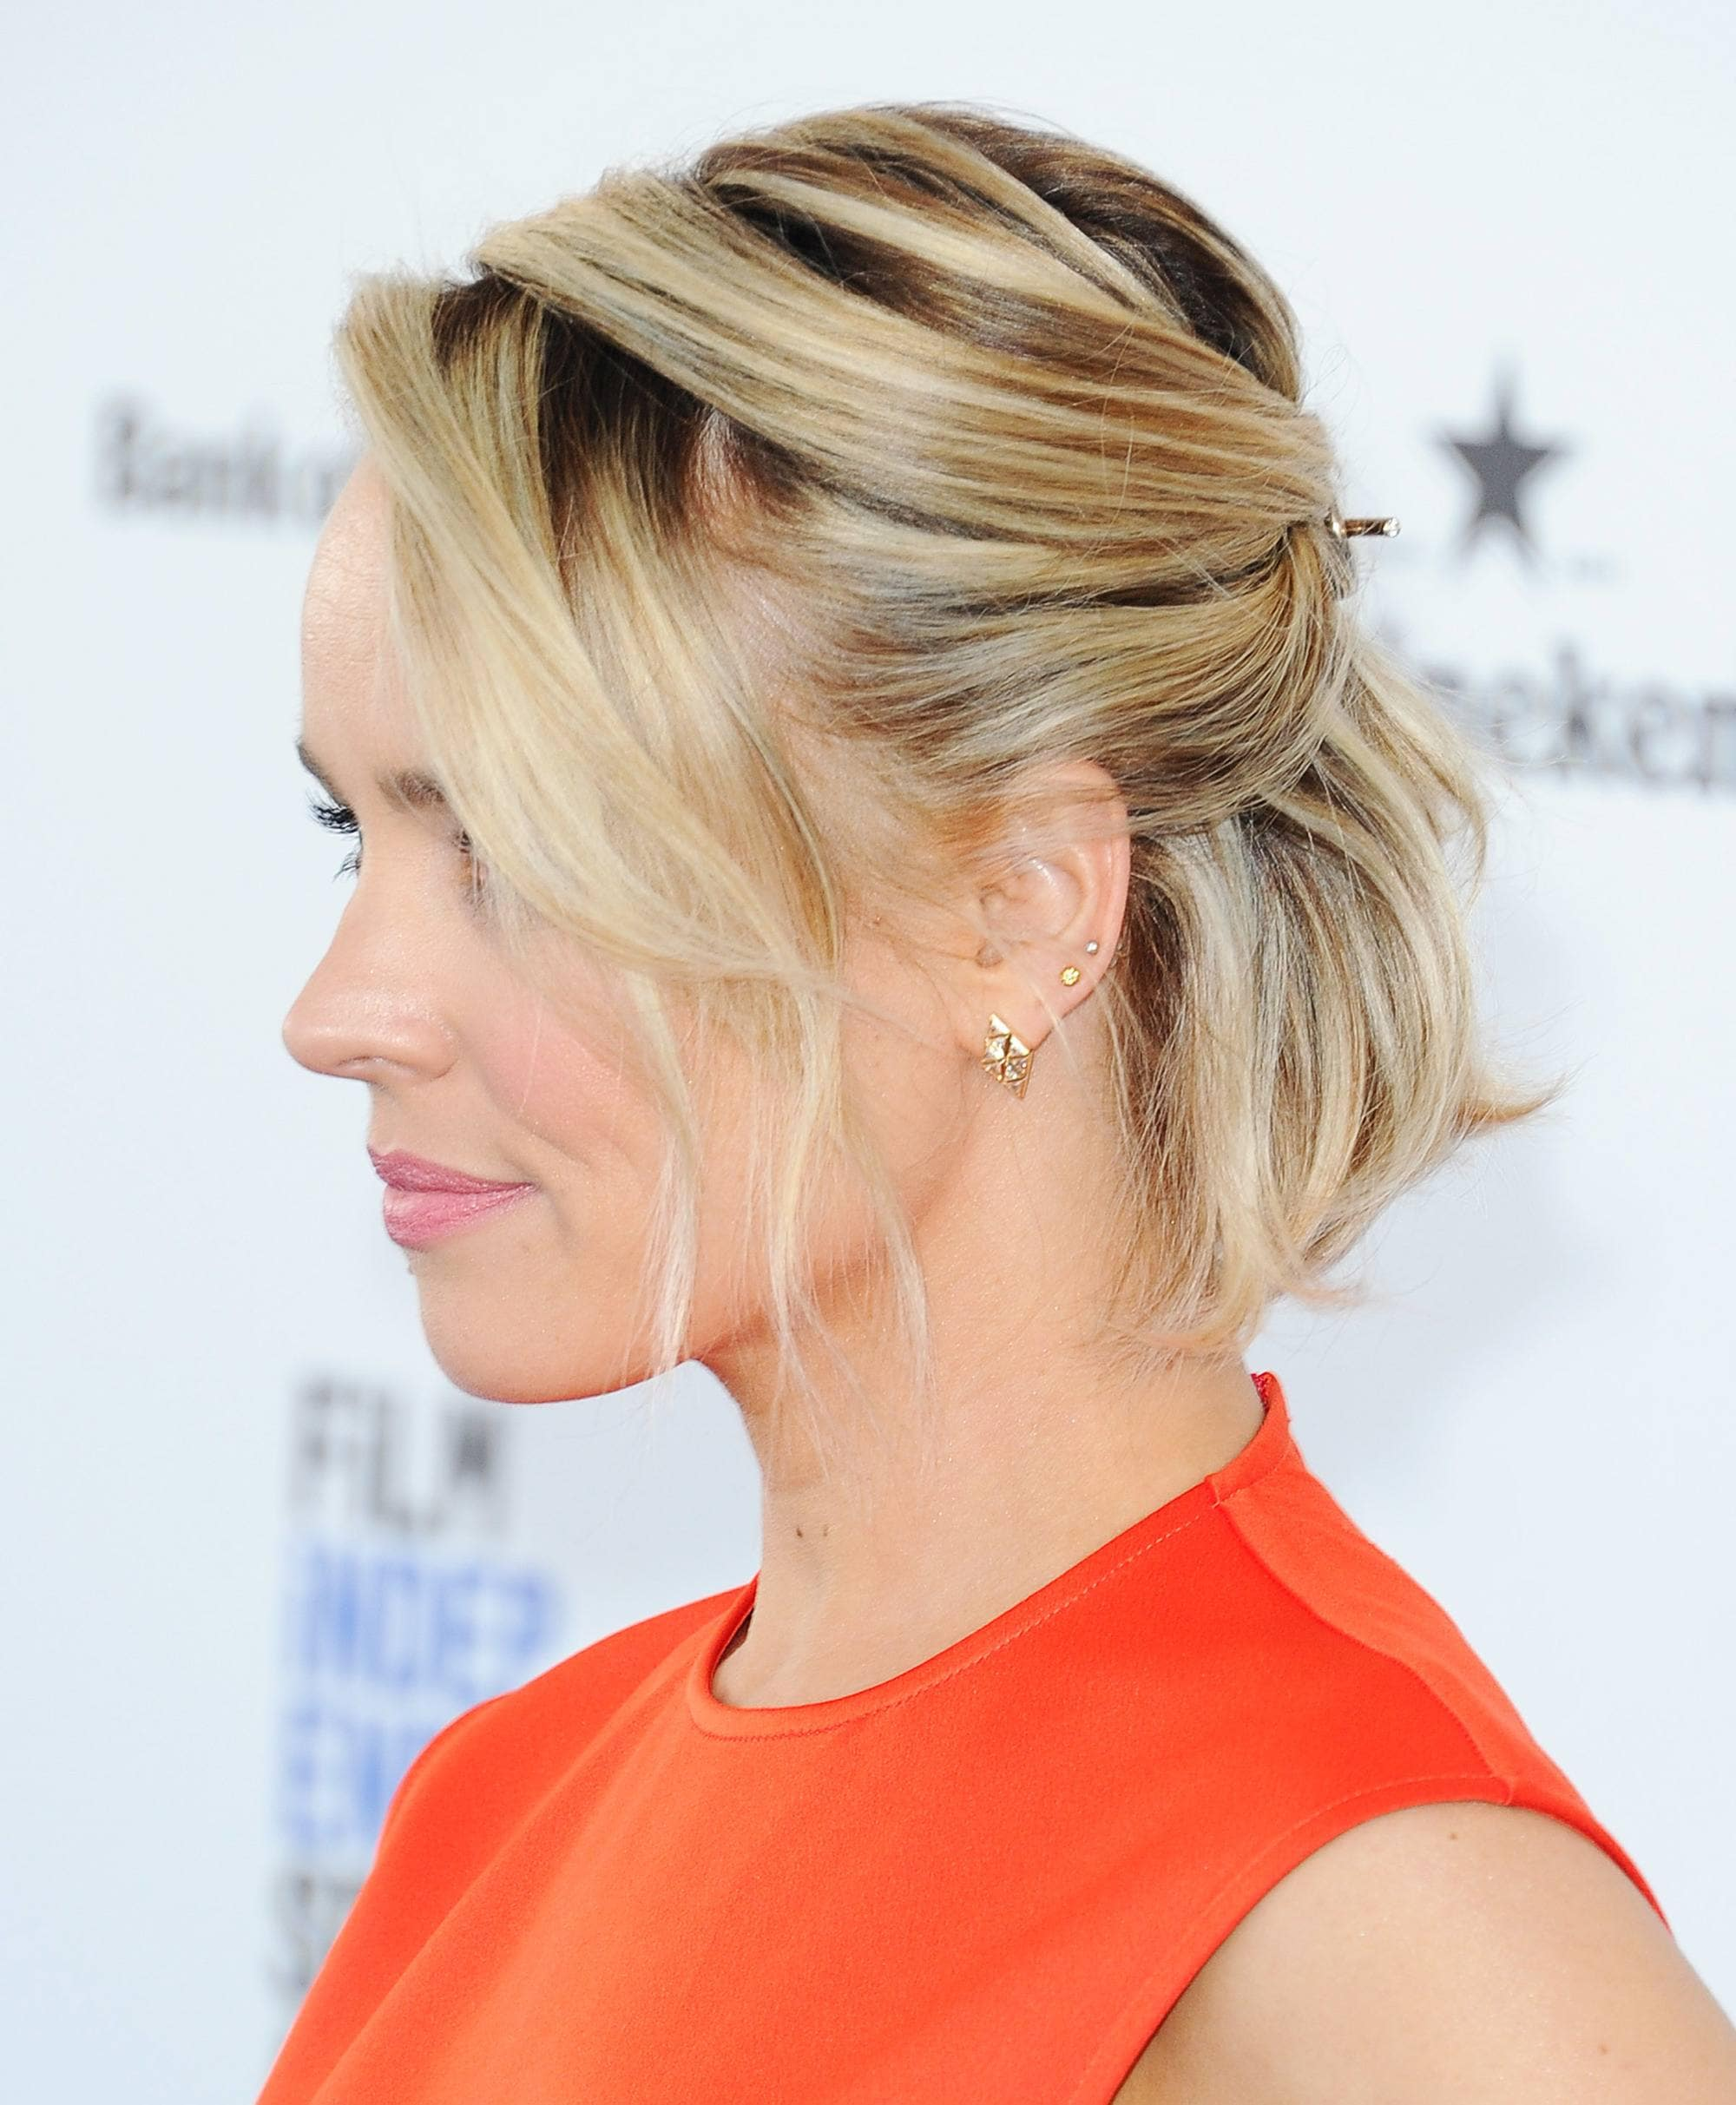 Formal hairstyles for short hair: side view of rachel mcadams blonde bob length hair in half-up, half-down style